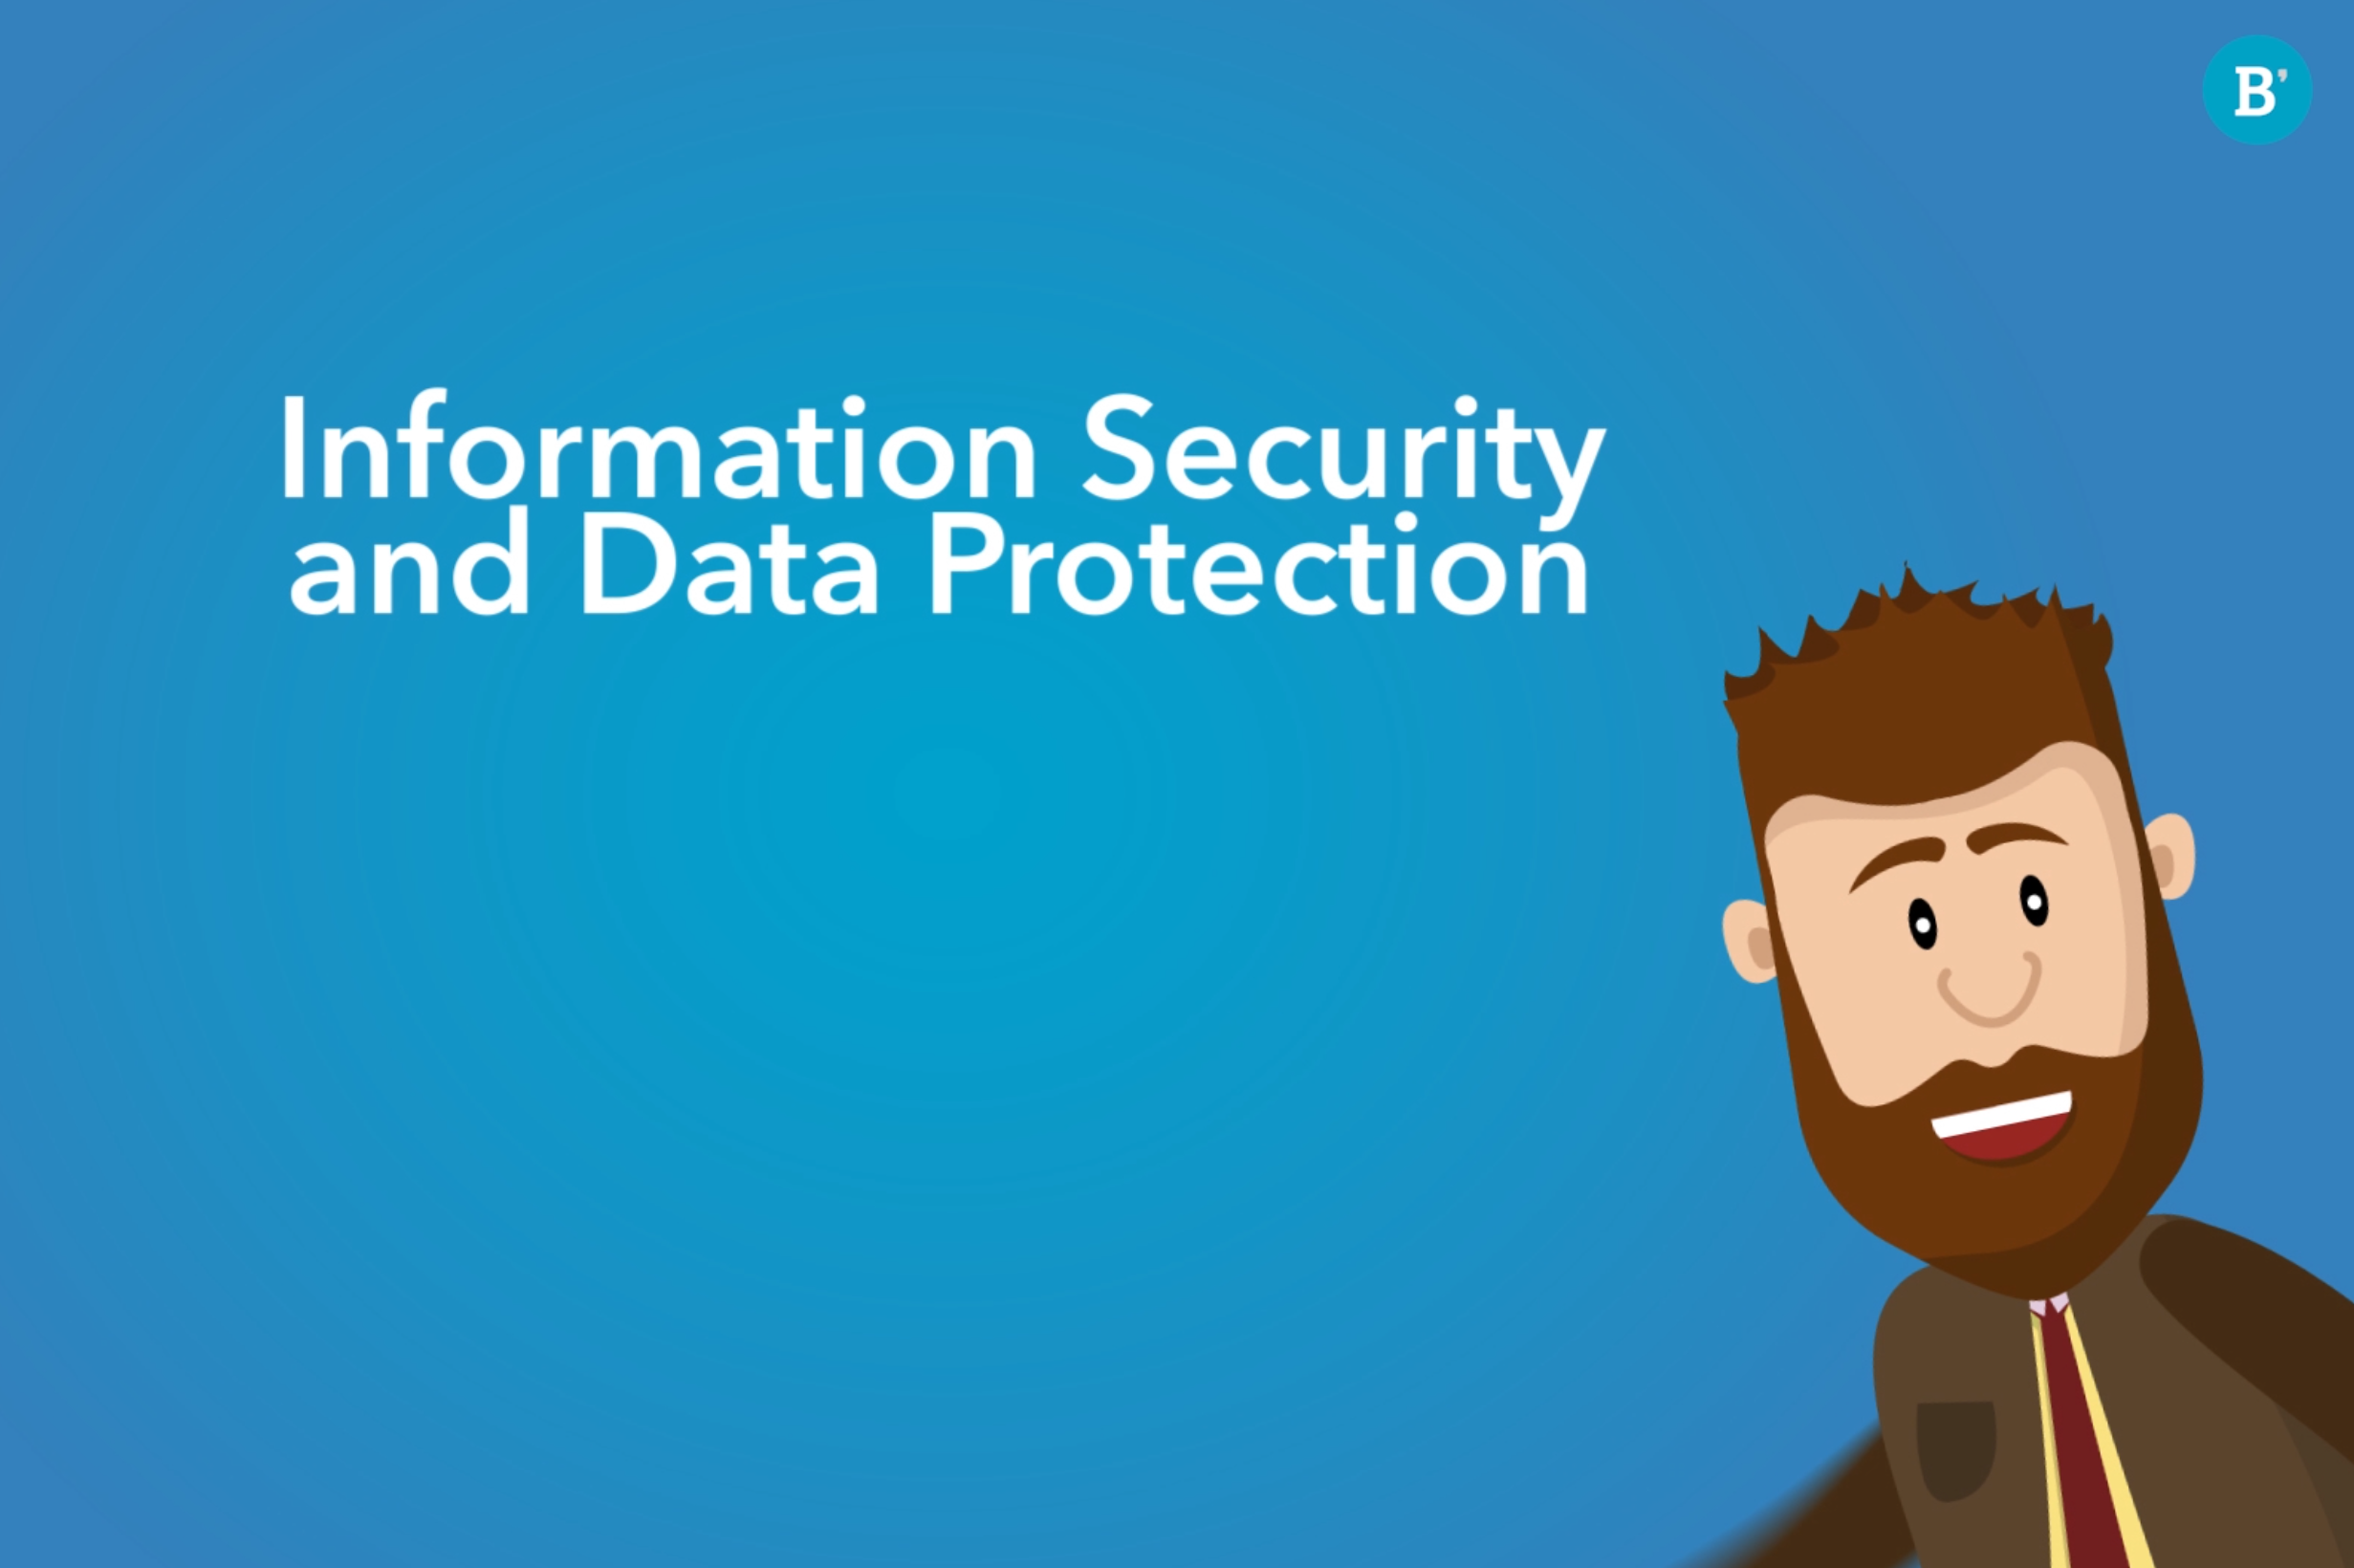 Information Security and Data Protection